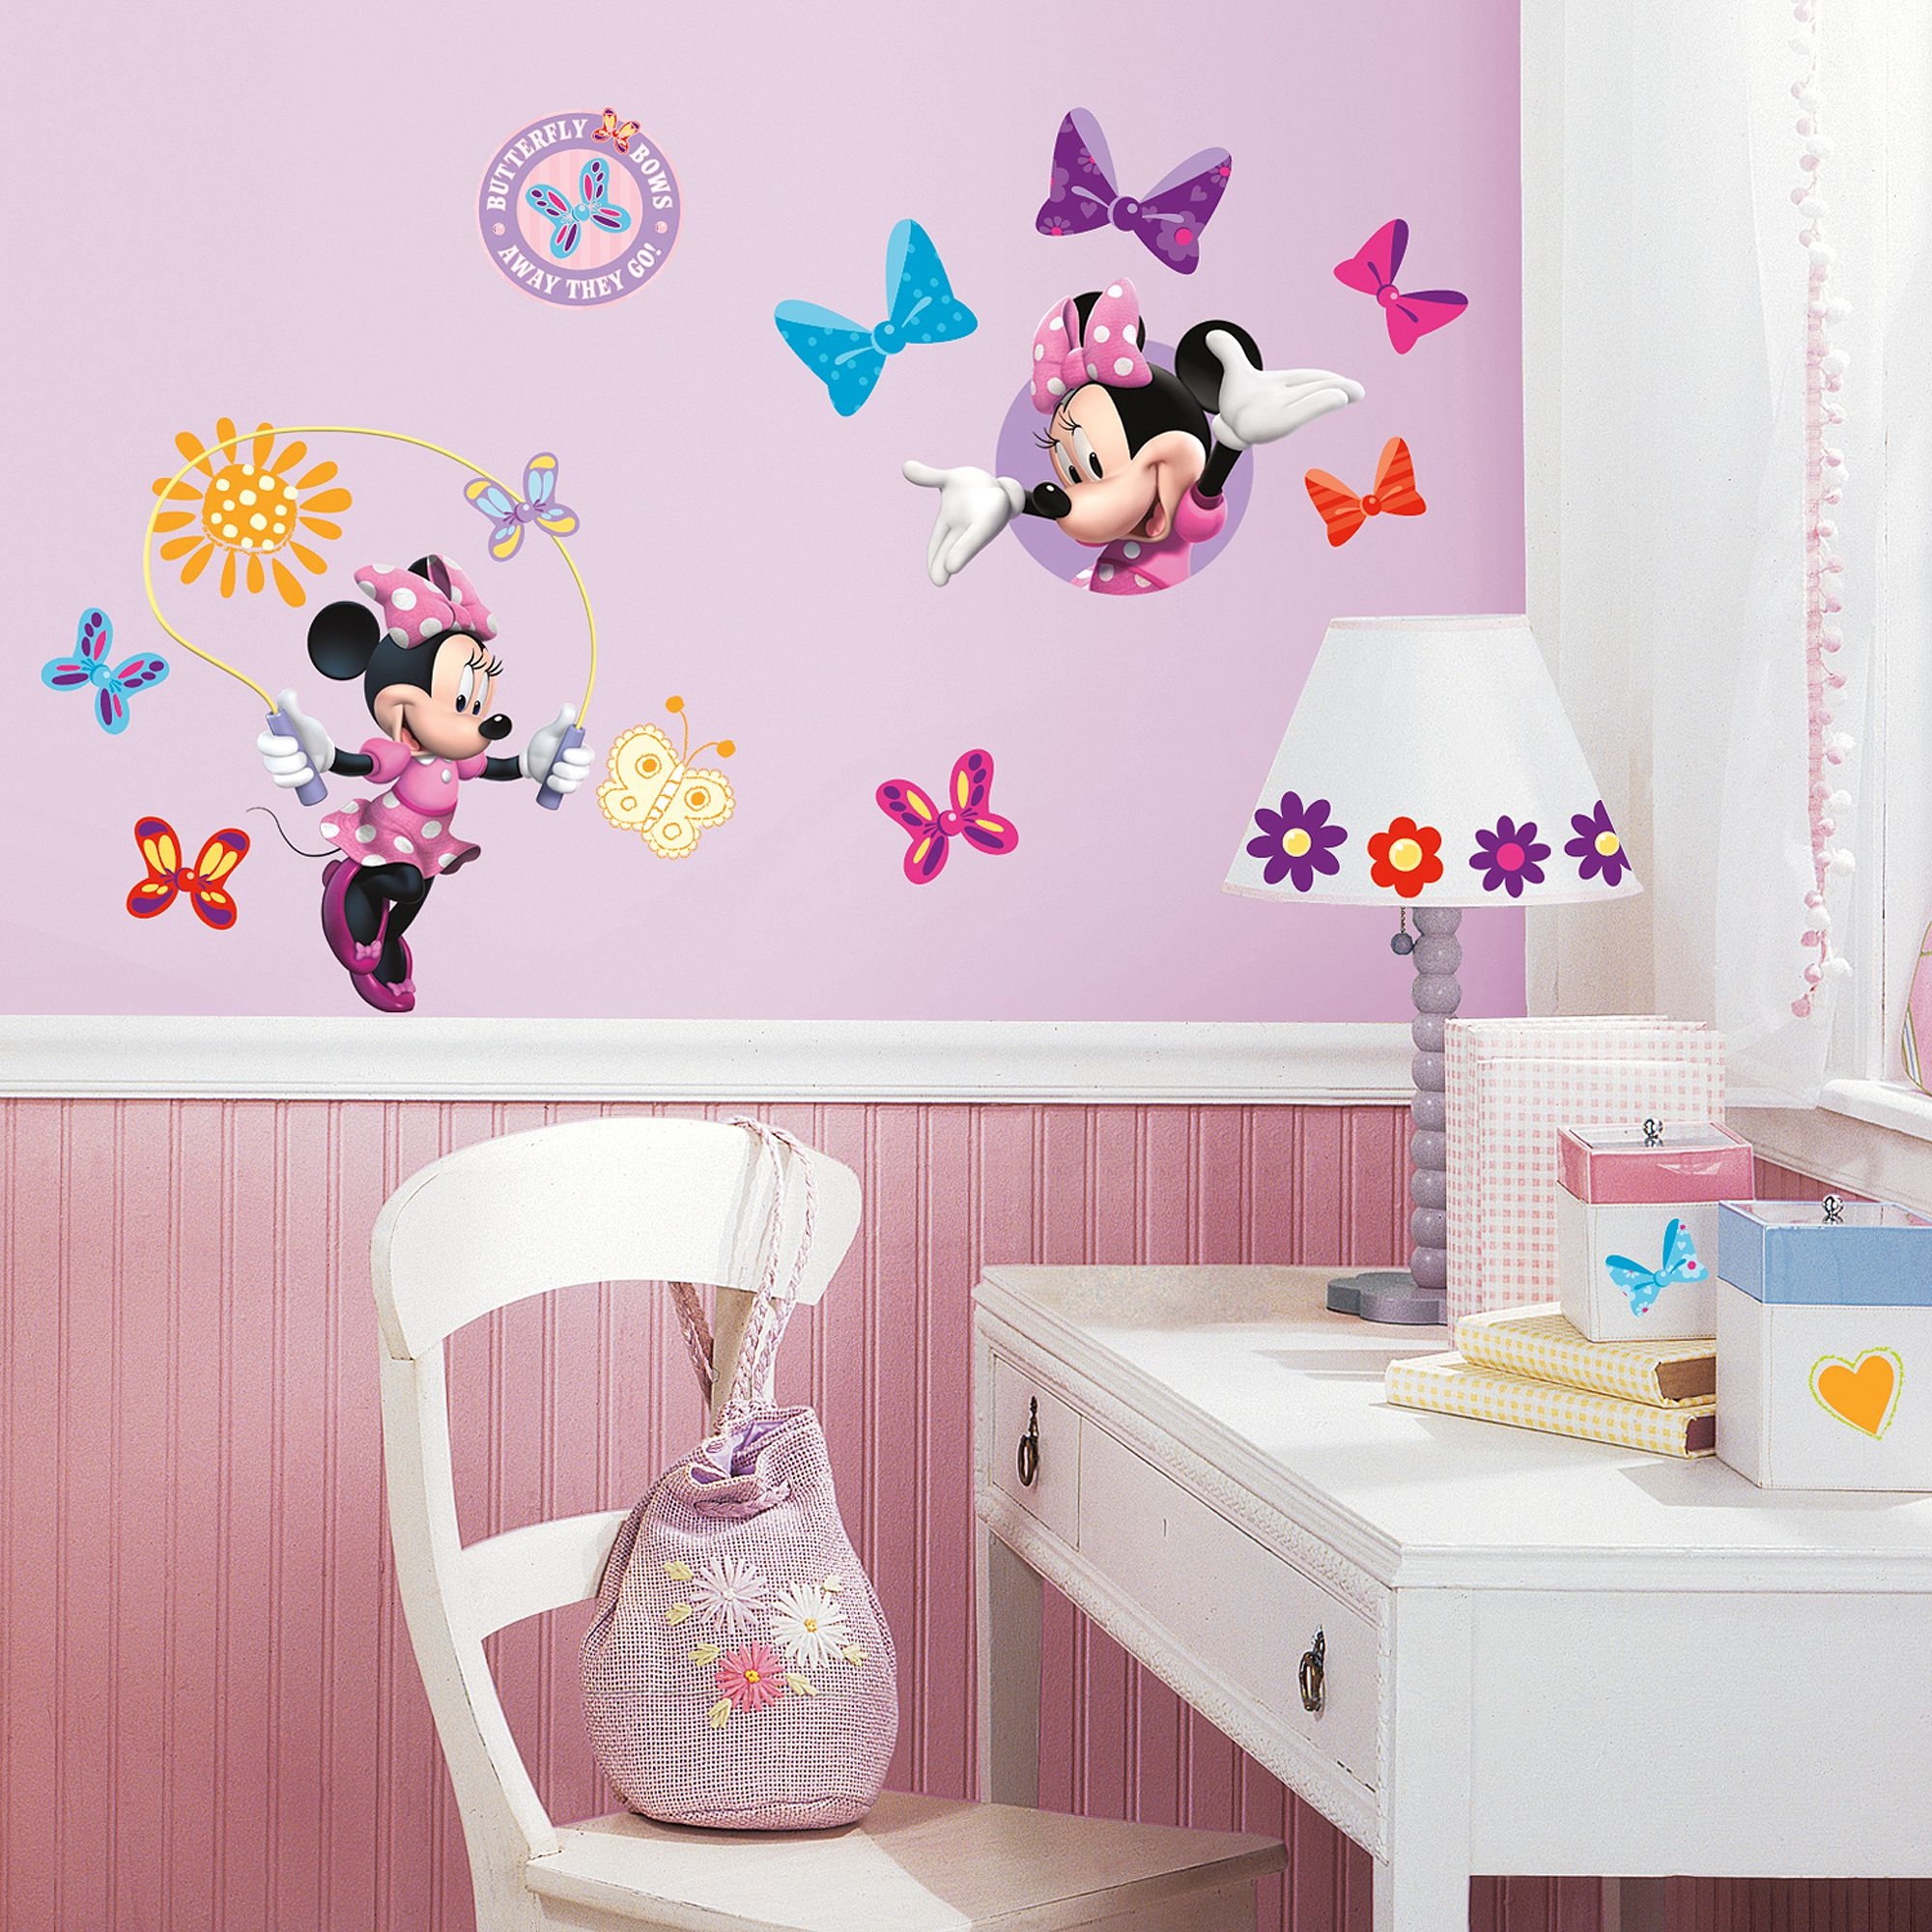 Roommates mickey and friends minnie bow tique peel and stick wall roommates mickey and friends minnie bow tique peel and stick wall decals walmart amipublicfo Image collections